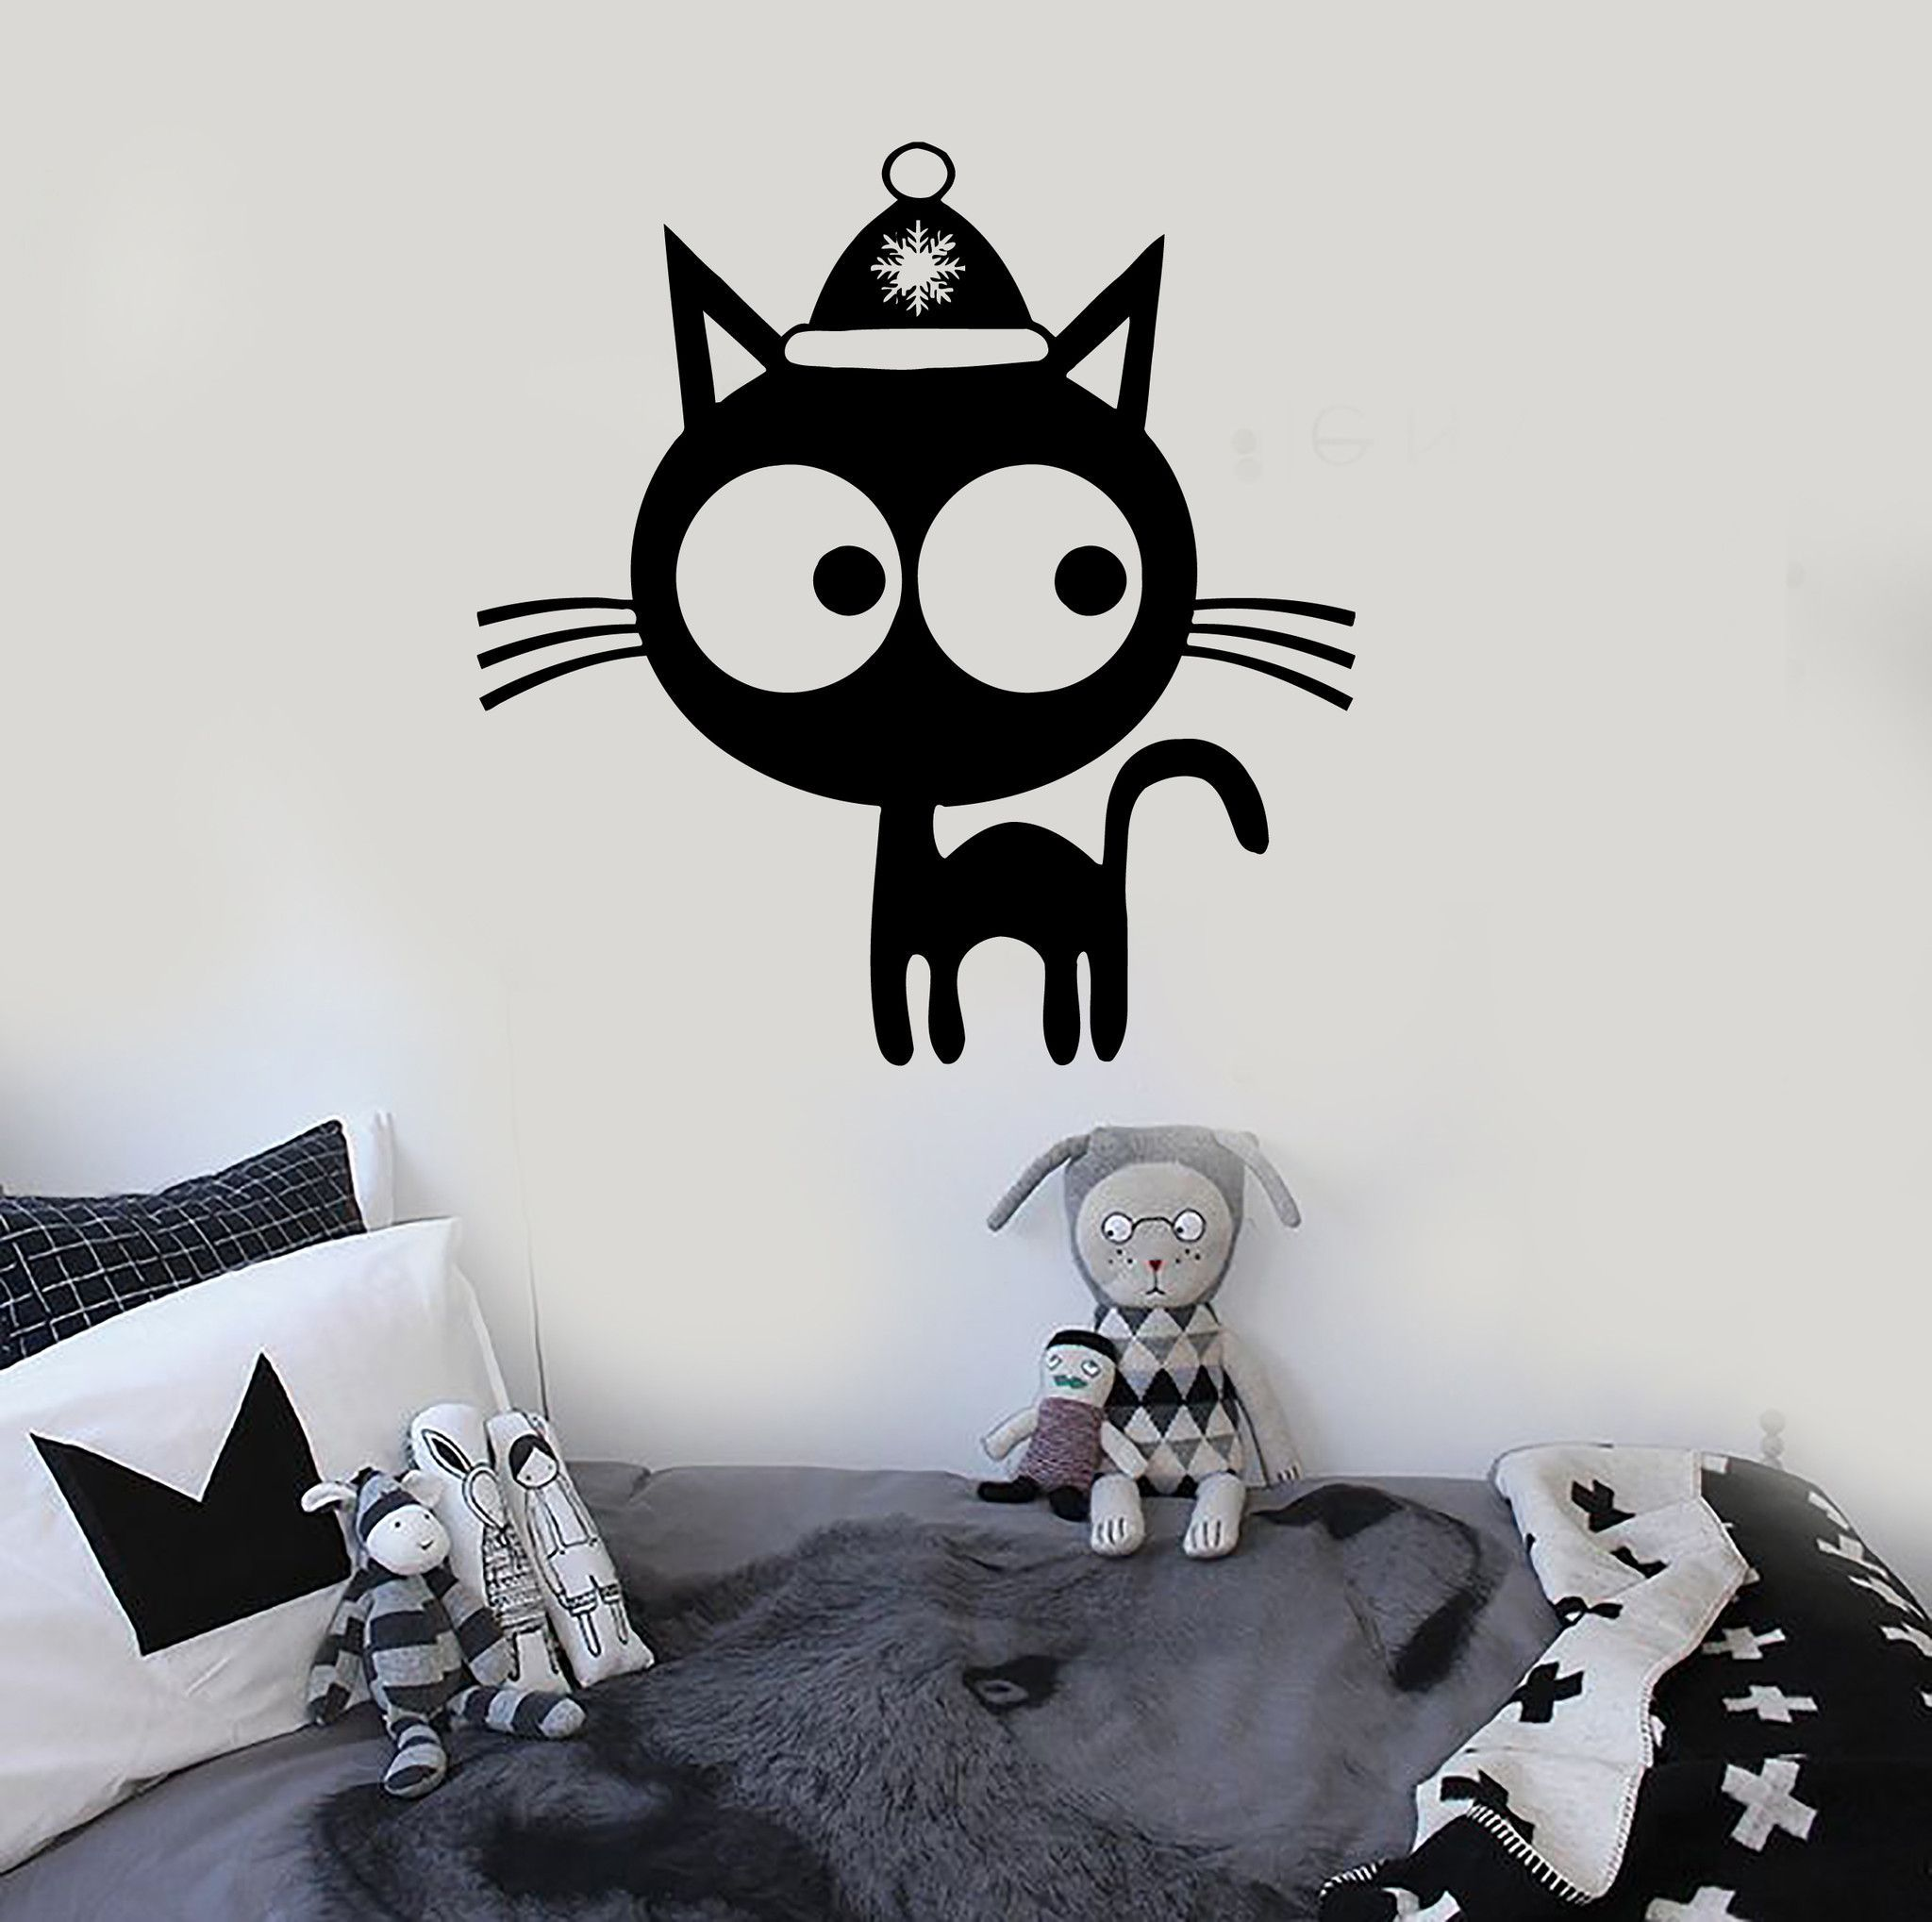 Wall stickers vinyl decal winter kitten new year christmas pet cat